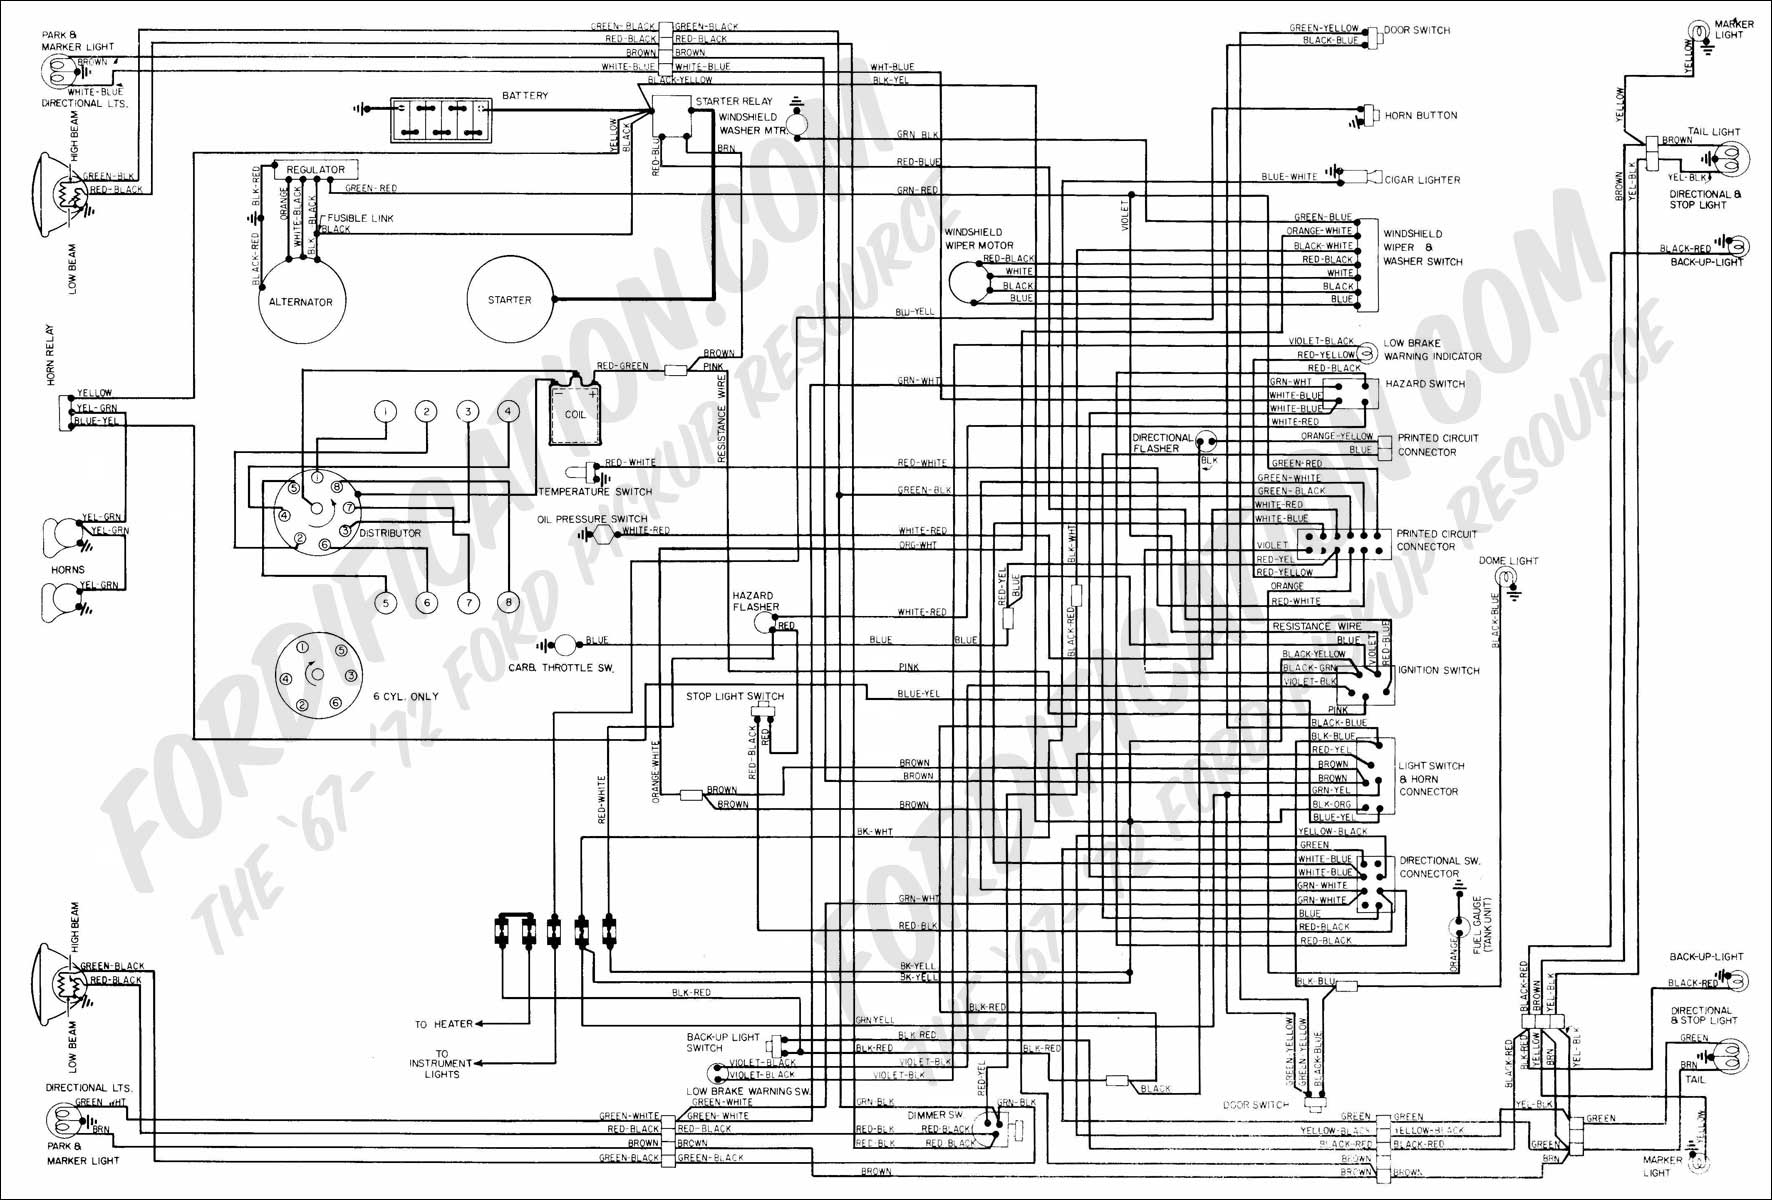 Wiring Diagram For 1976 Corvette in addition 7 3 Water Separator Location also Schematics i furthermore 84 Chevy Truck Fuse Box Diagram furthermore 1301216 71 F100 Electrical Help. on van vacuum diagrams 1974